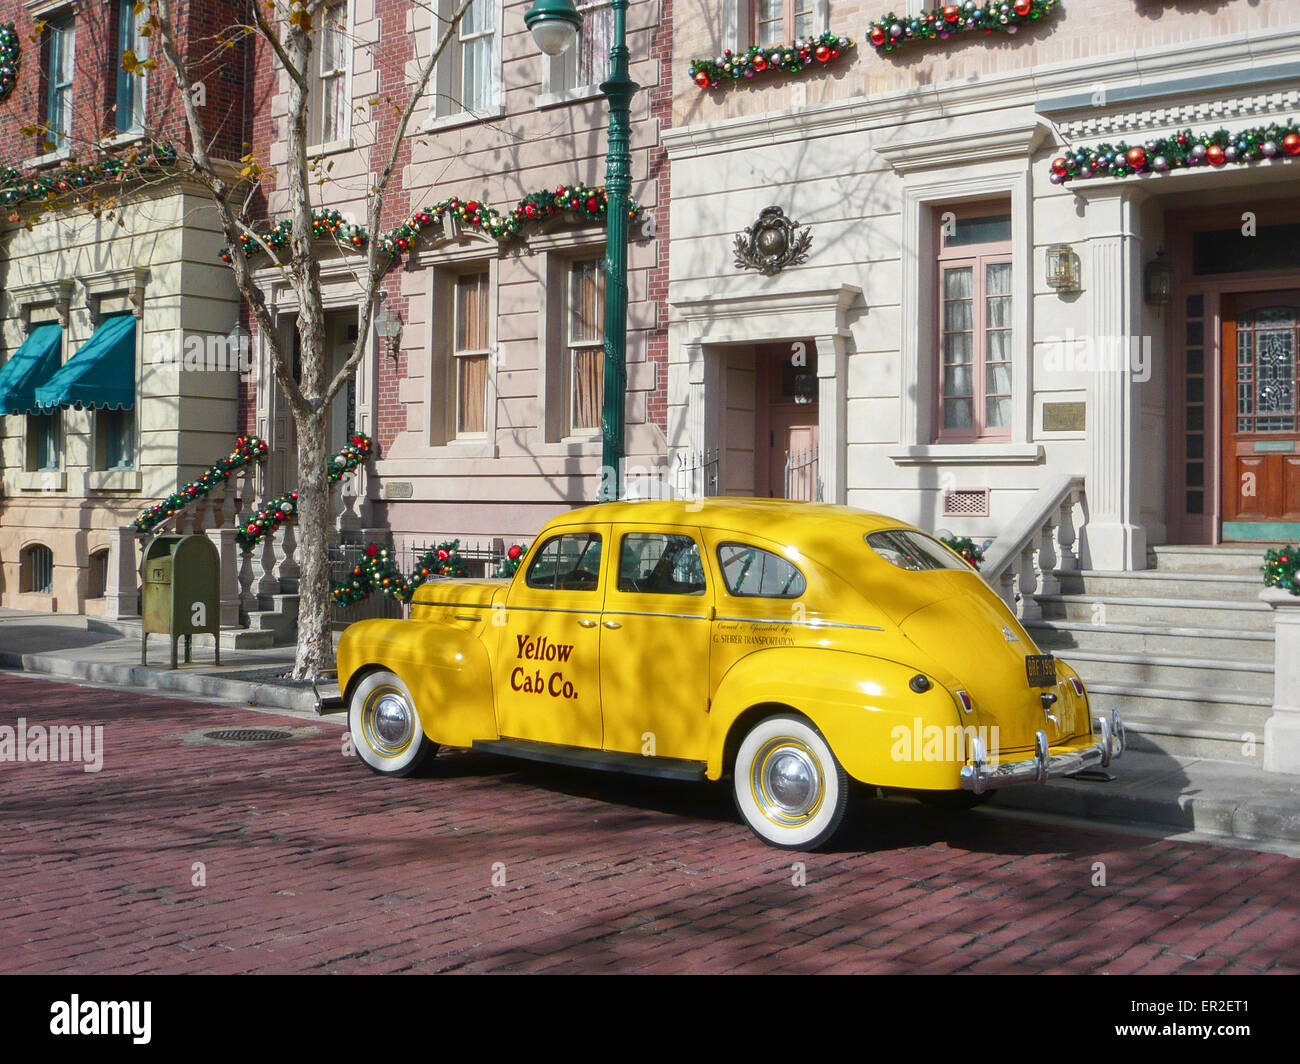 Yellow cab outside a house. - Stock Image